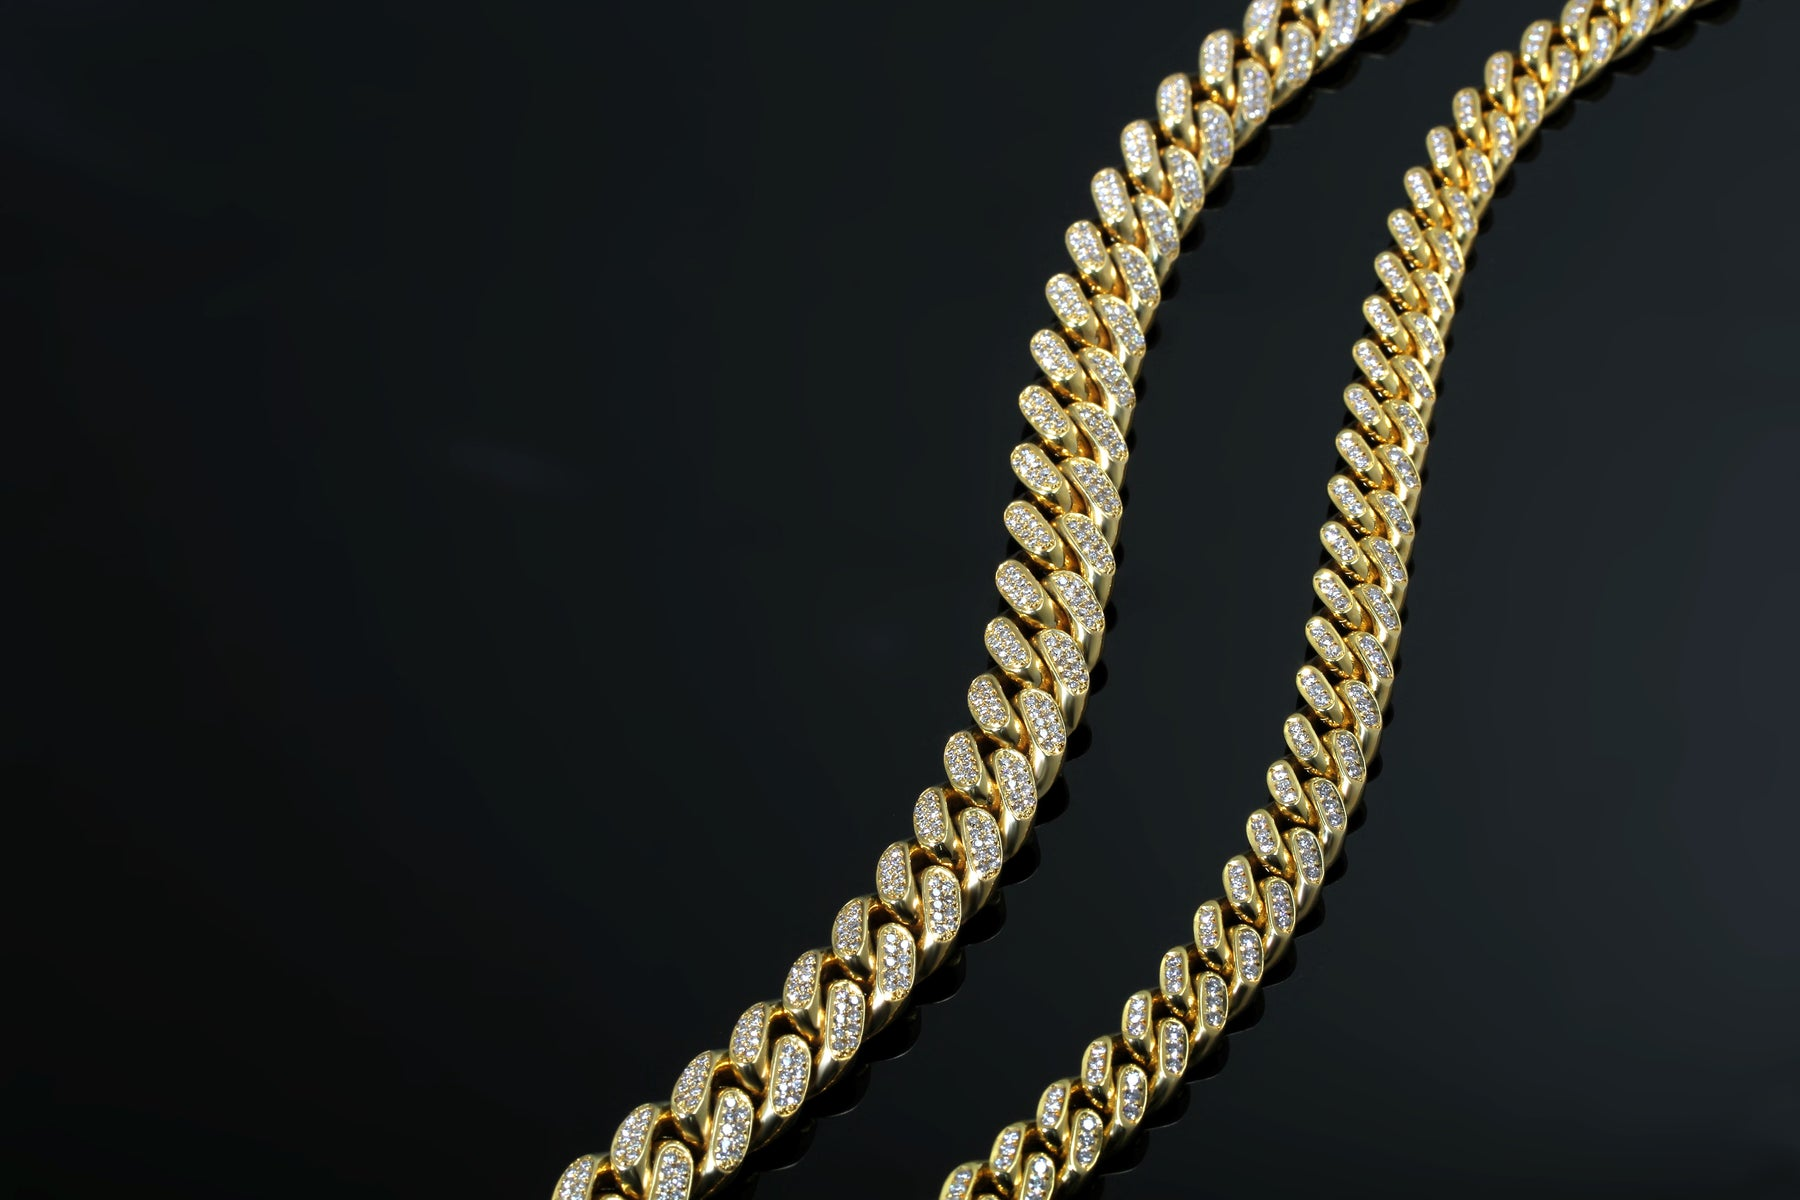 products necklace chain link gold bijouterie ifandco gonin vvs diamond choker tennis